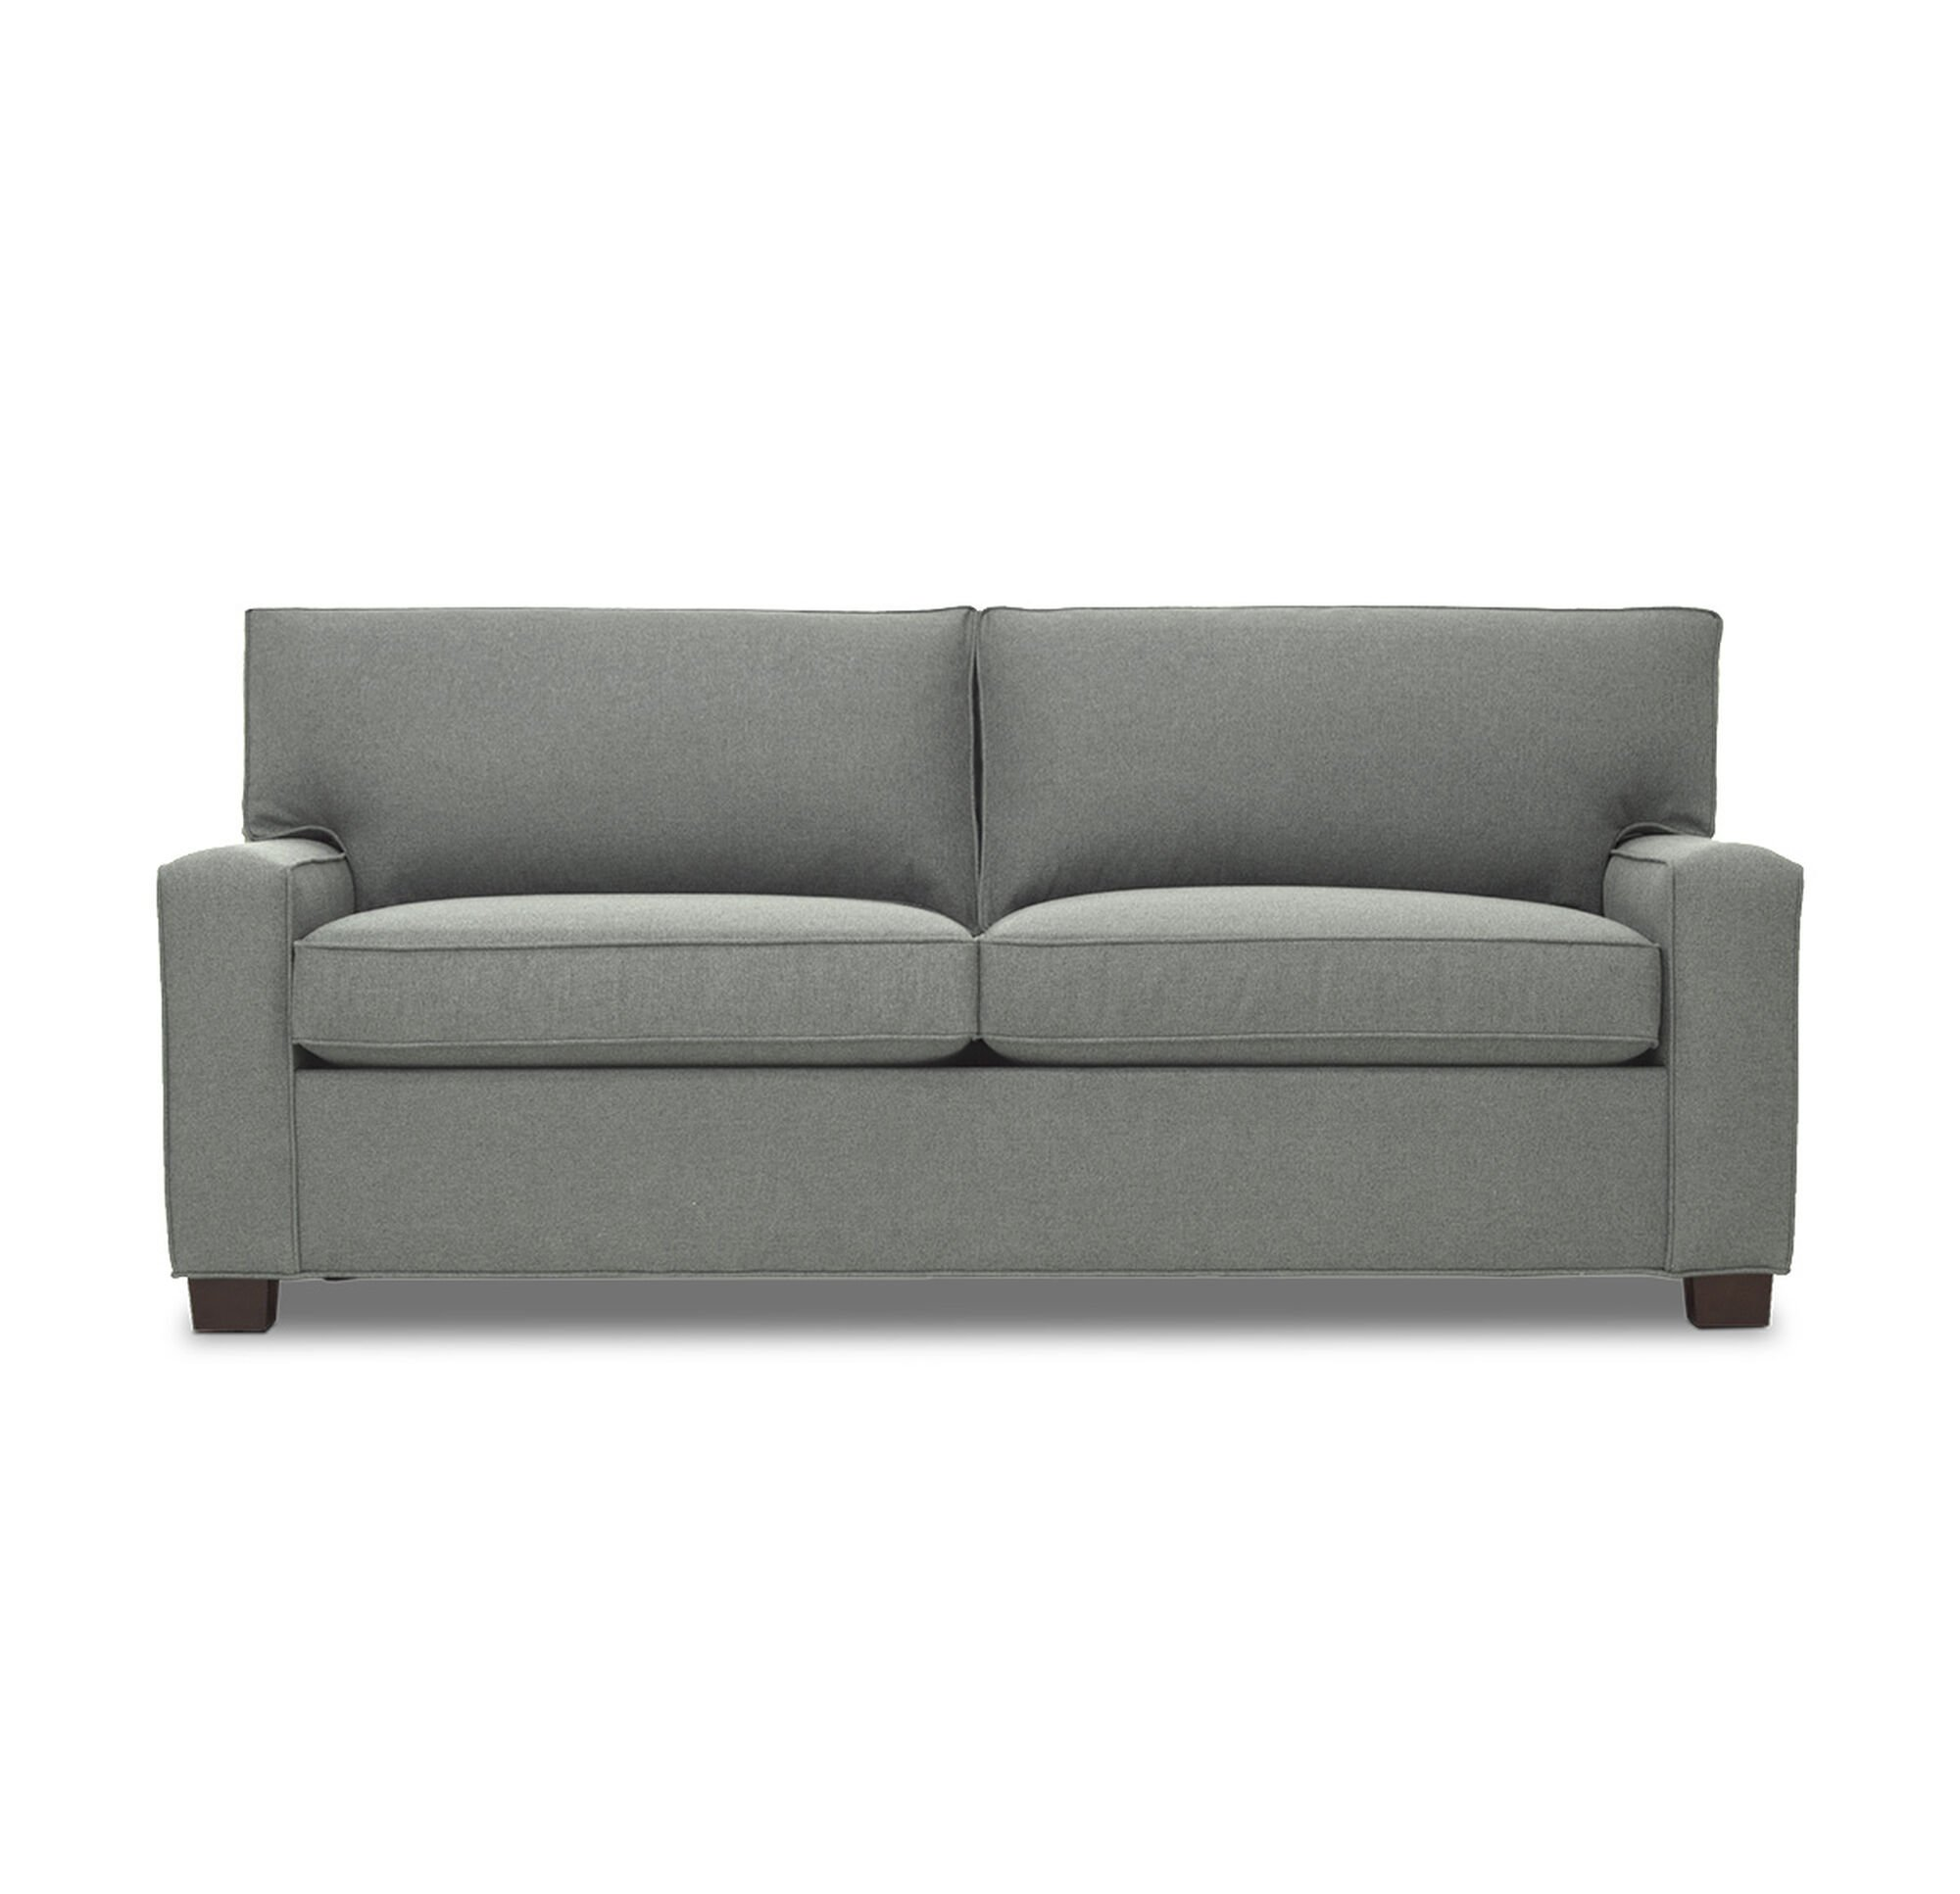 Pleasant Alex Super Luxe Queen Sleeper Sofa Gmtry Best Dining Table And Chair Ideas Images Gmtryco